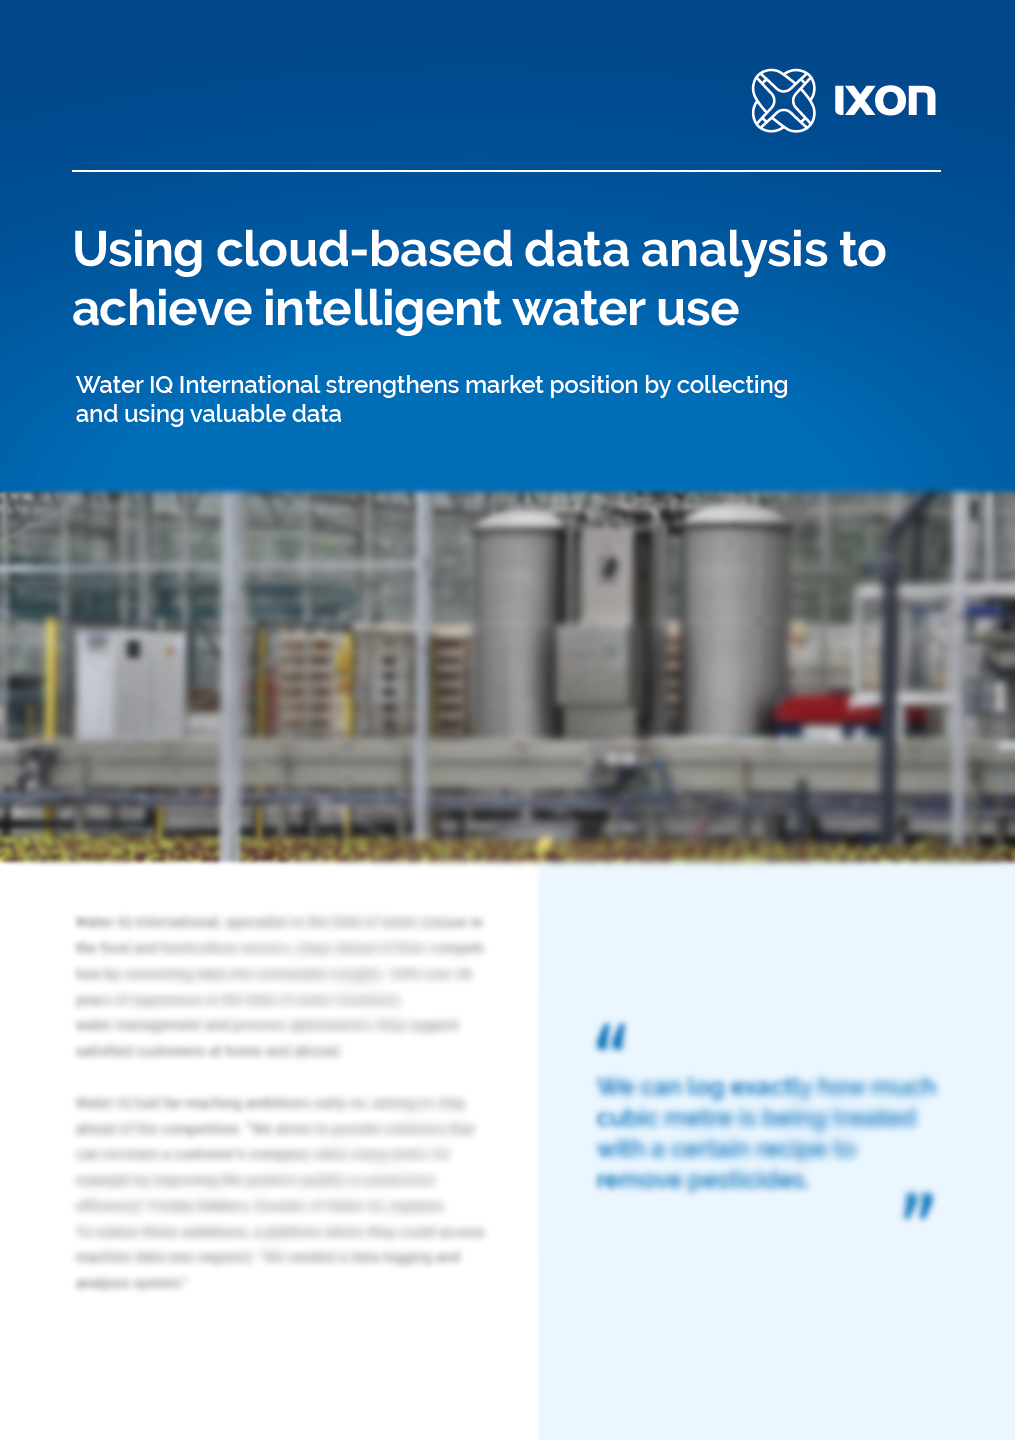 Case study Water IQ & IXON Cloud